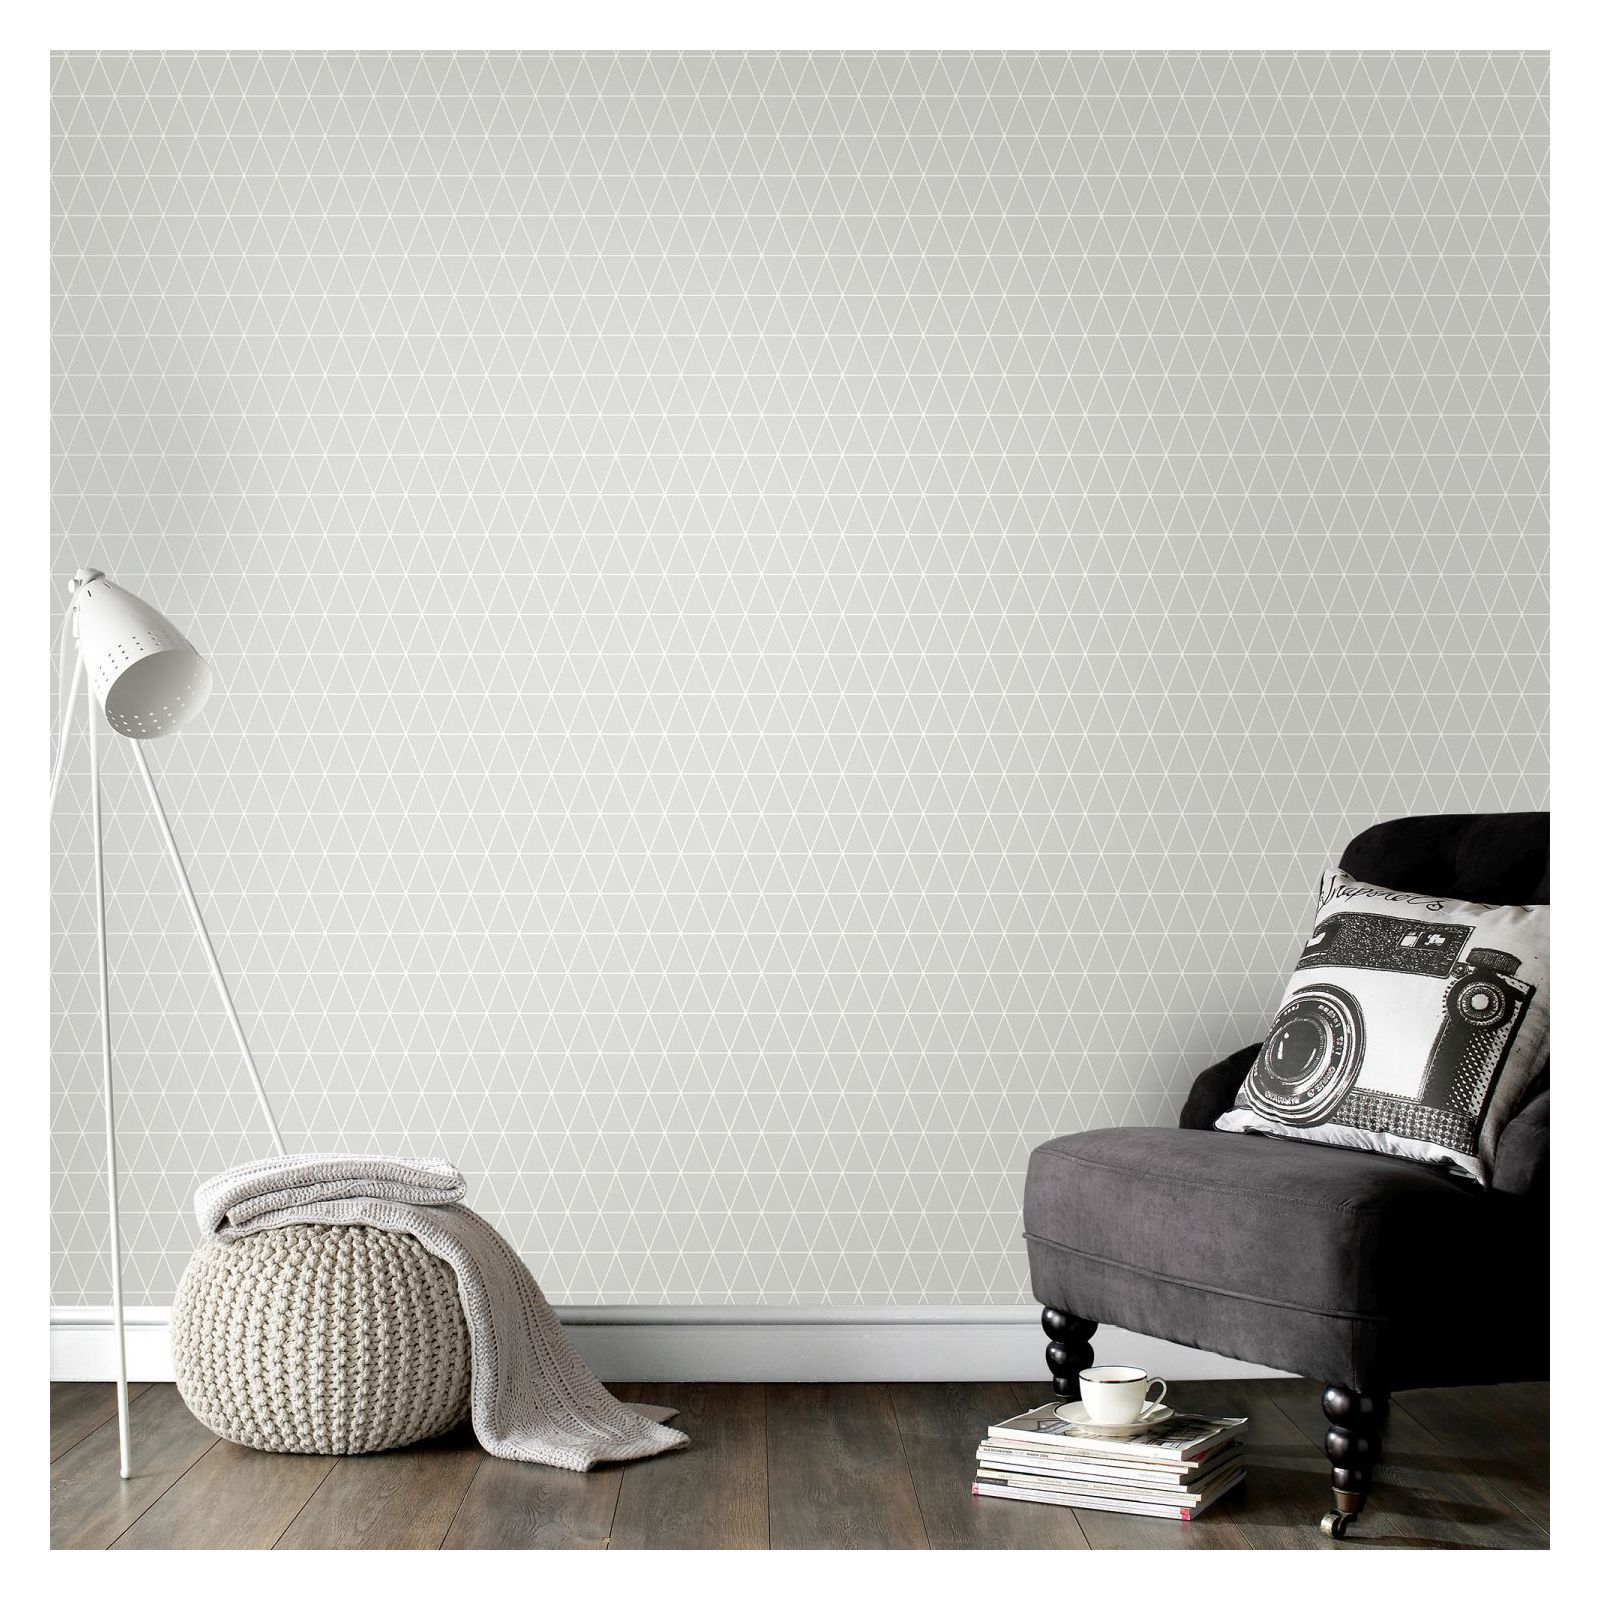 Superfresco Easy Paste the Wall Triangolin Gris Wallpaper